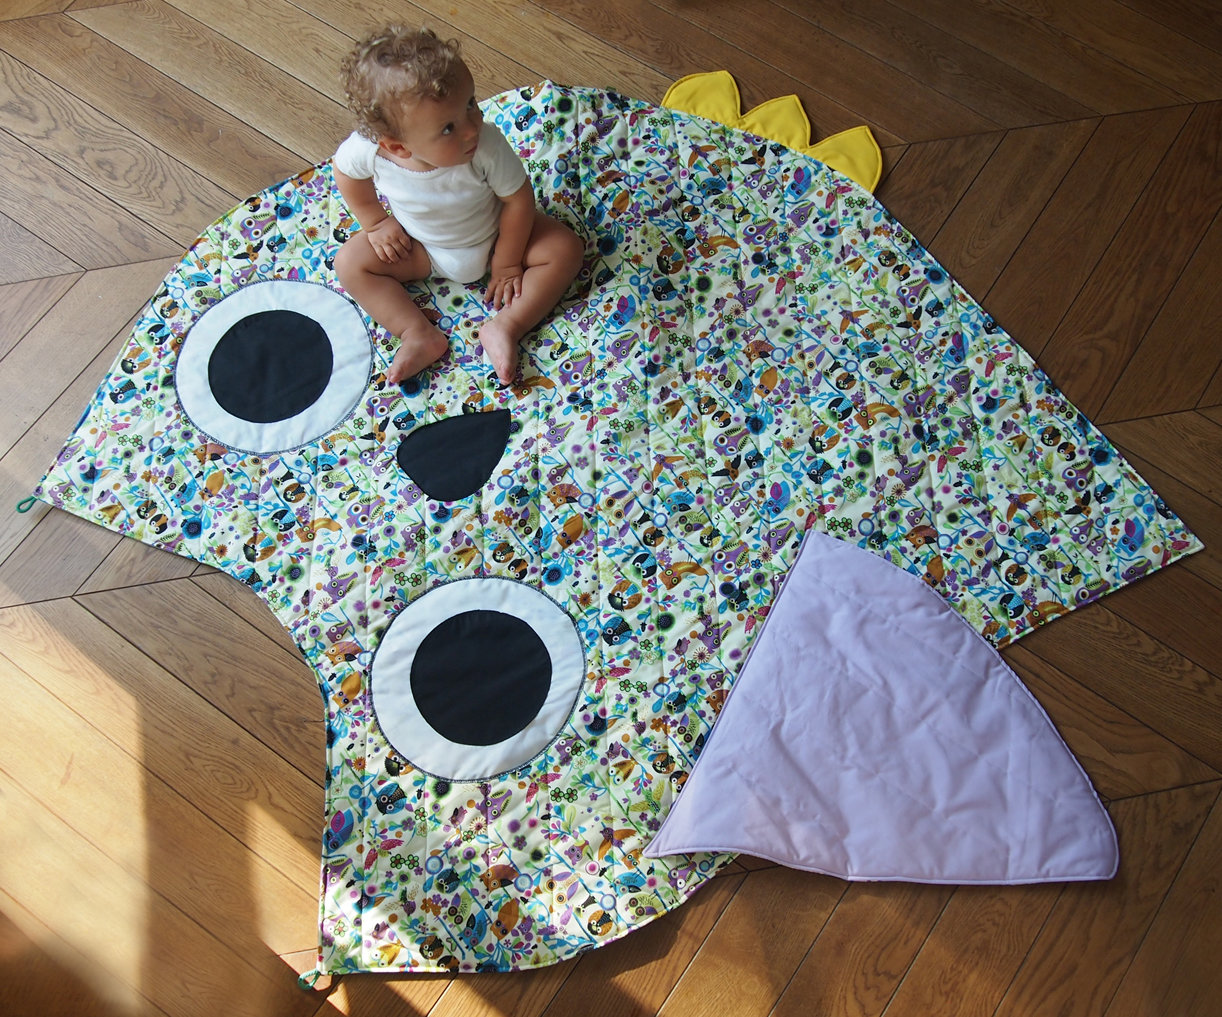 babydecke krabbeldecke spieldecke picknickdecke xxl thermodecke drinnen drau en ebay. Black Bedroom Furniture Sets. Home Design Ideas